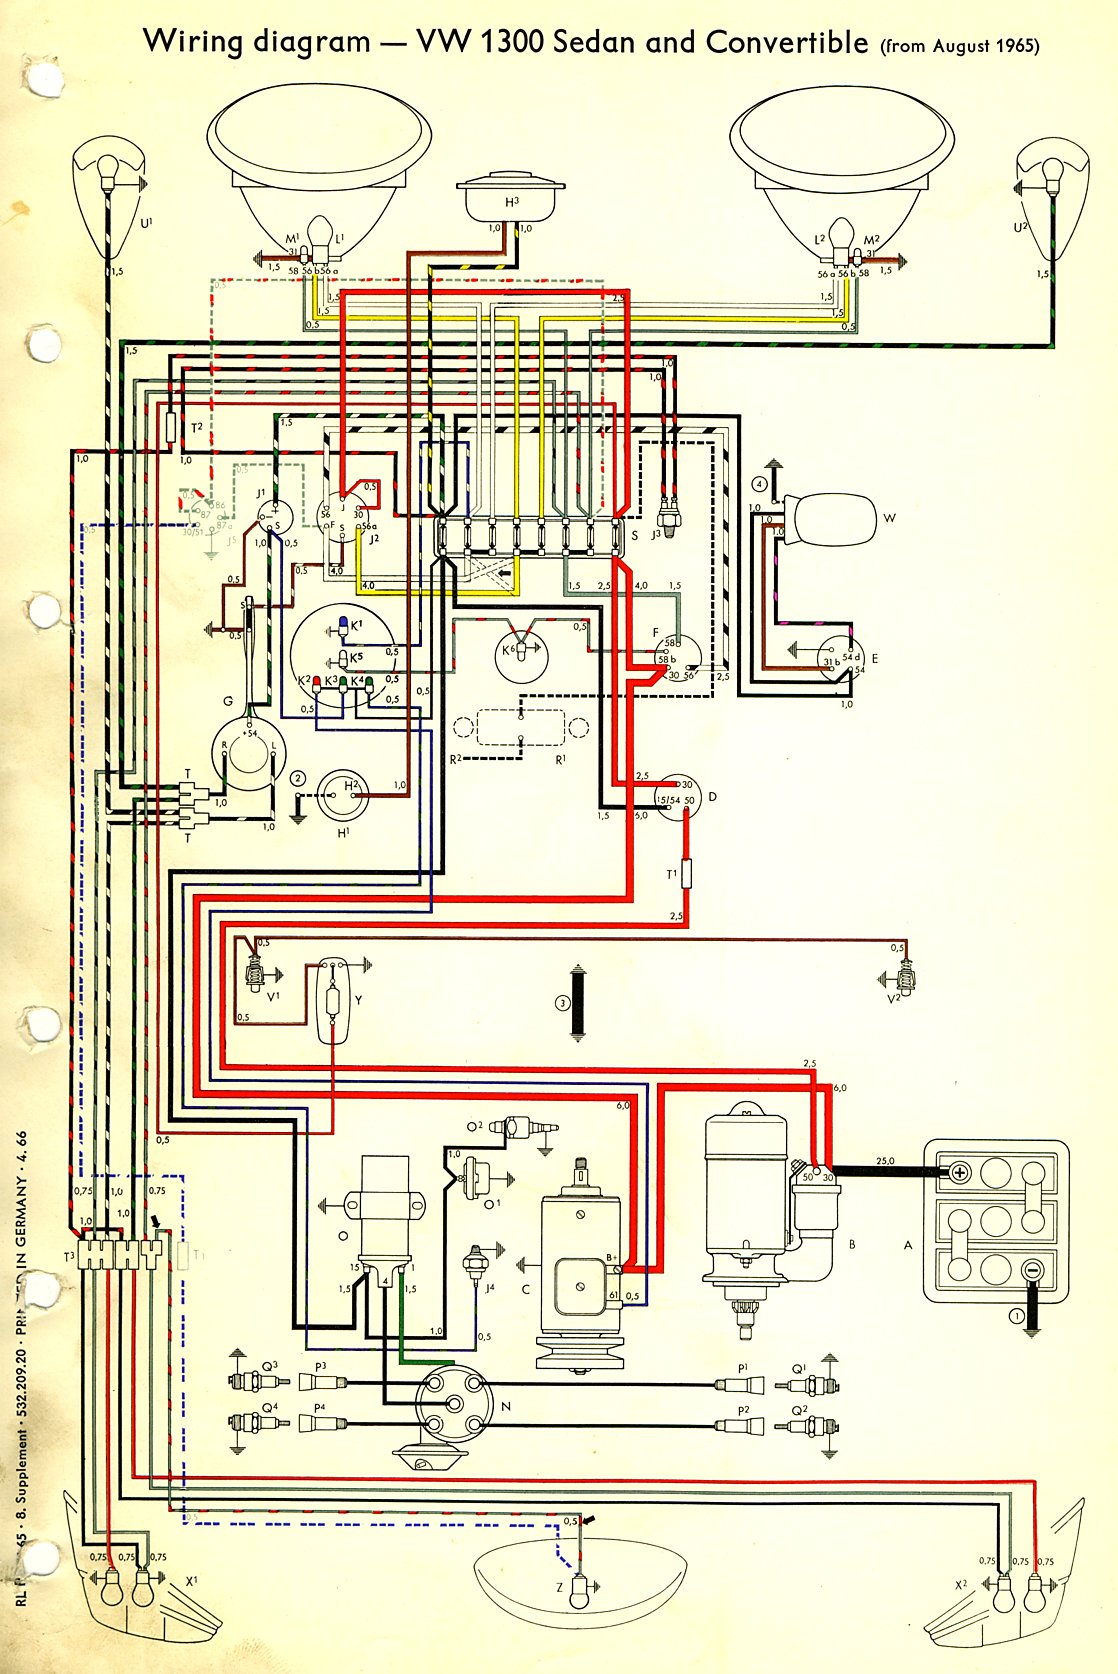 volkswagen wiring diagram volkswagen wiring diagrams online thesamba com type 1 wiring diagrams description volkswagen wiring diagram